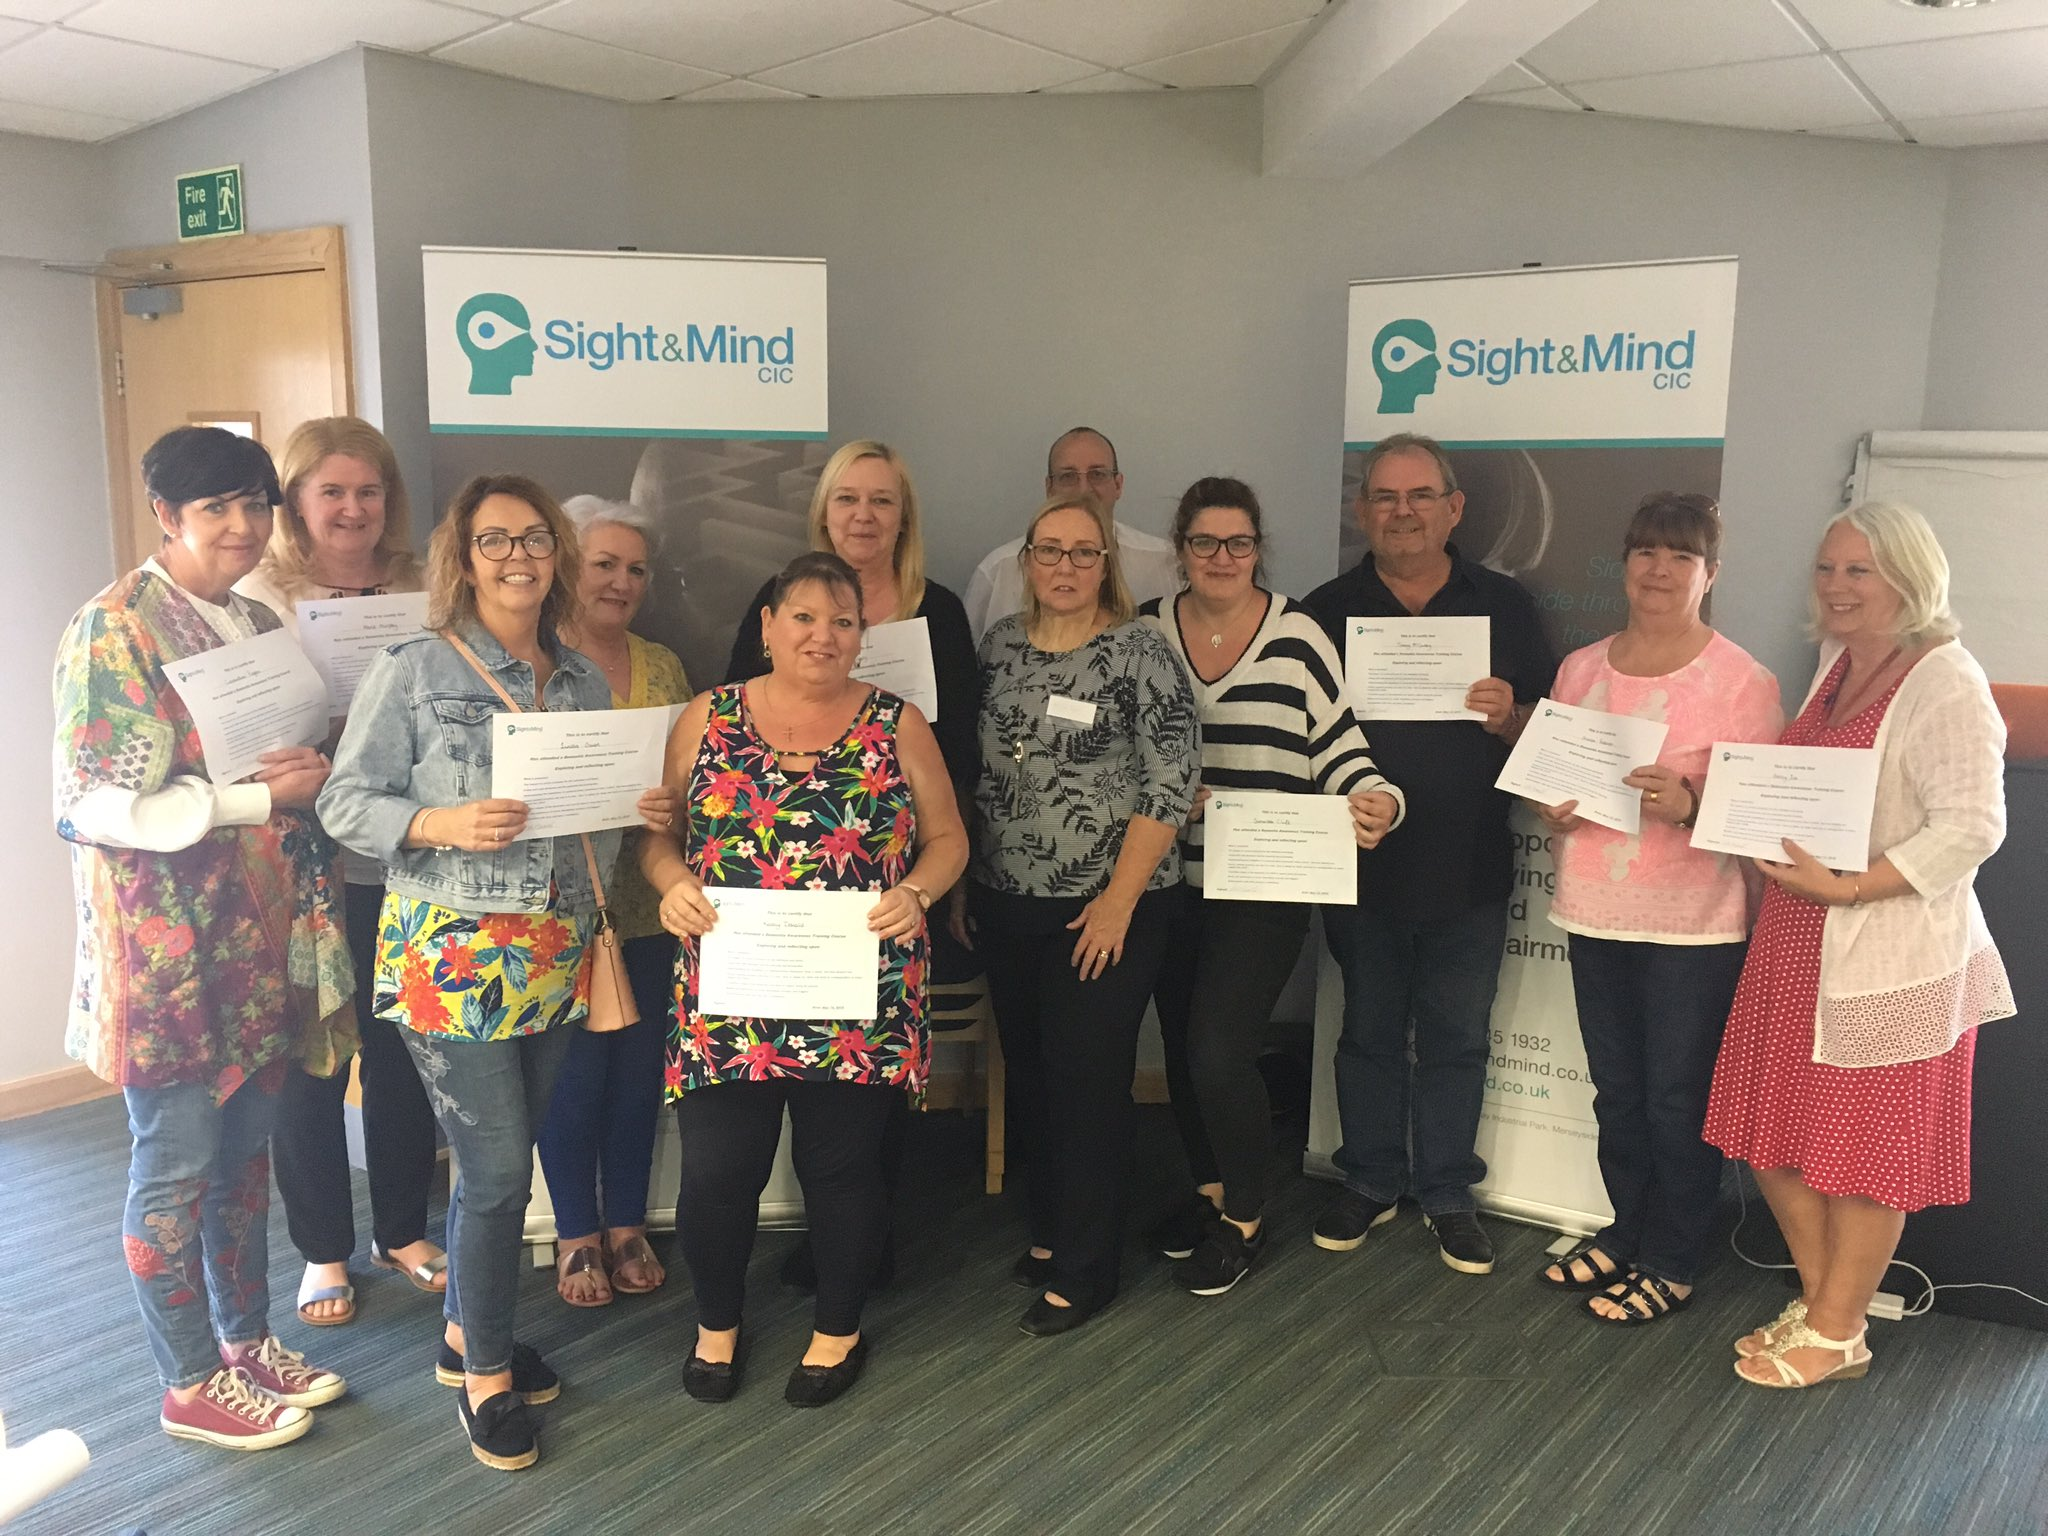 Group photo of trainees holding their training certificates